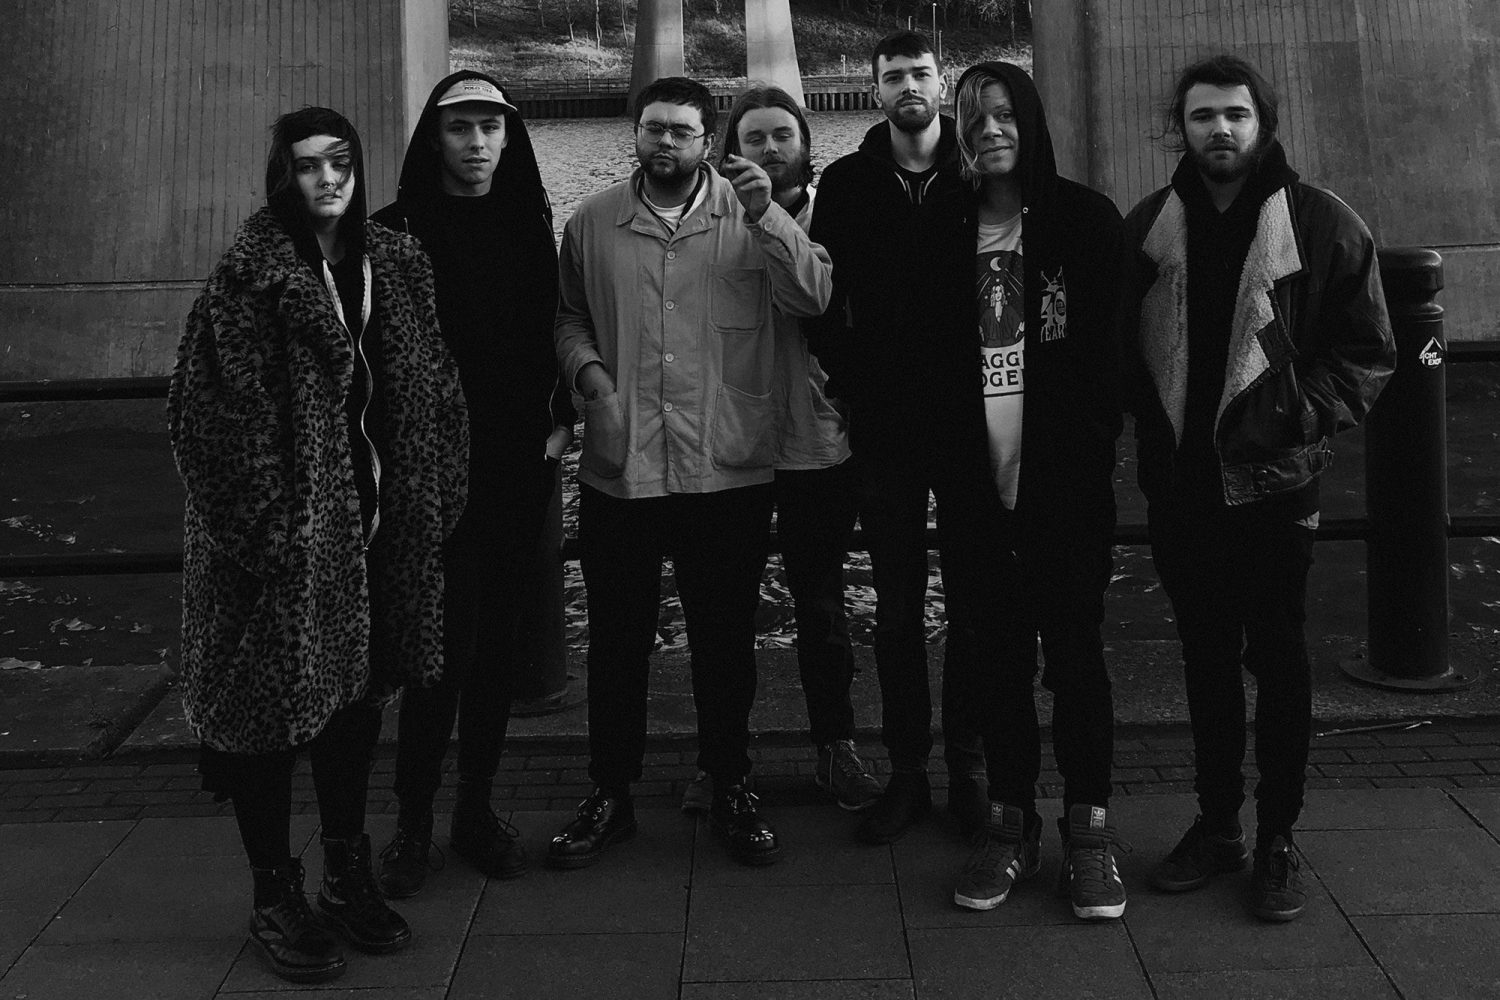 itoldyouiwouldeatyou have announced a London show to celebrate their debut's first birthday